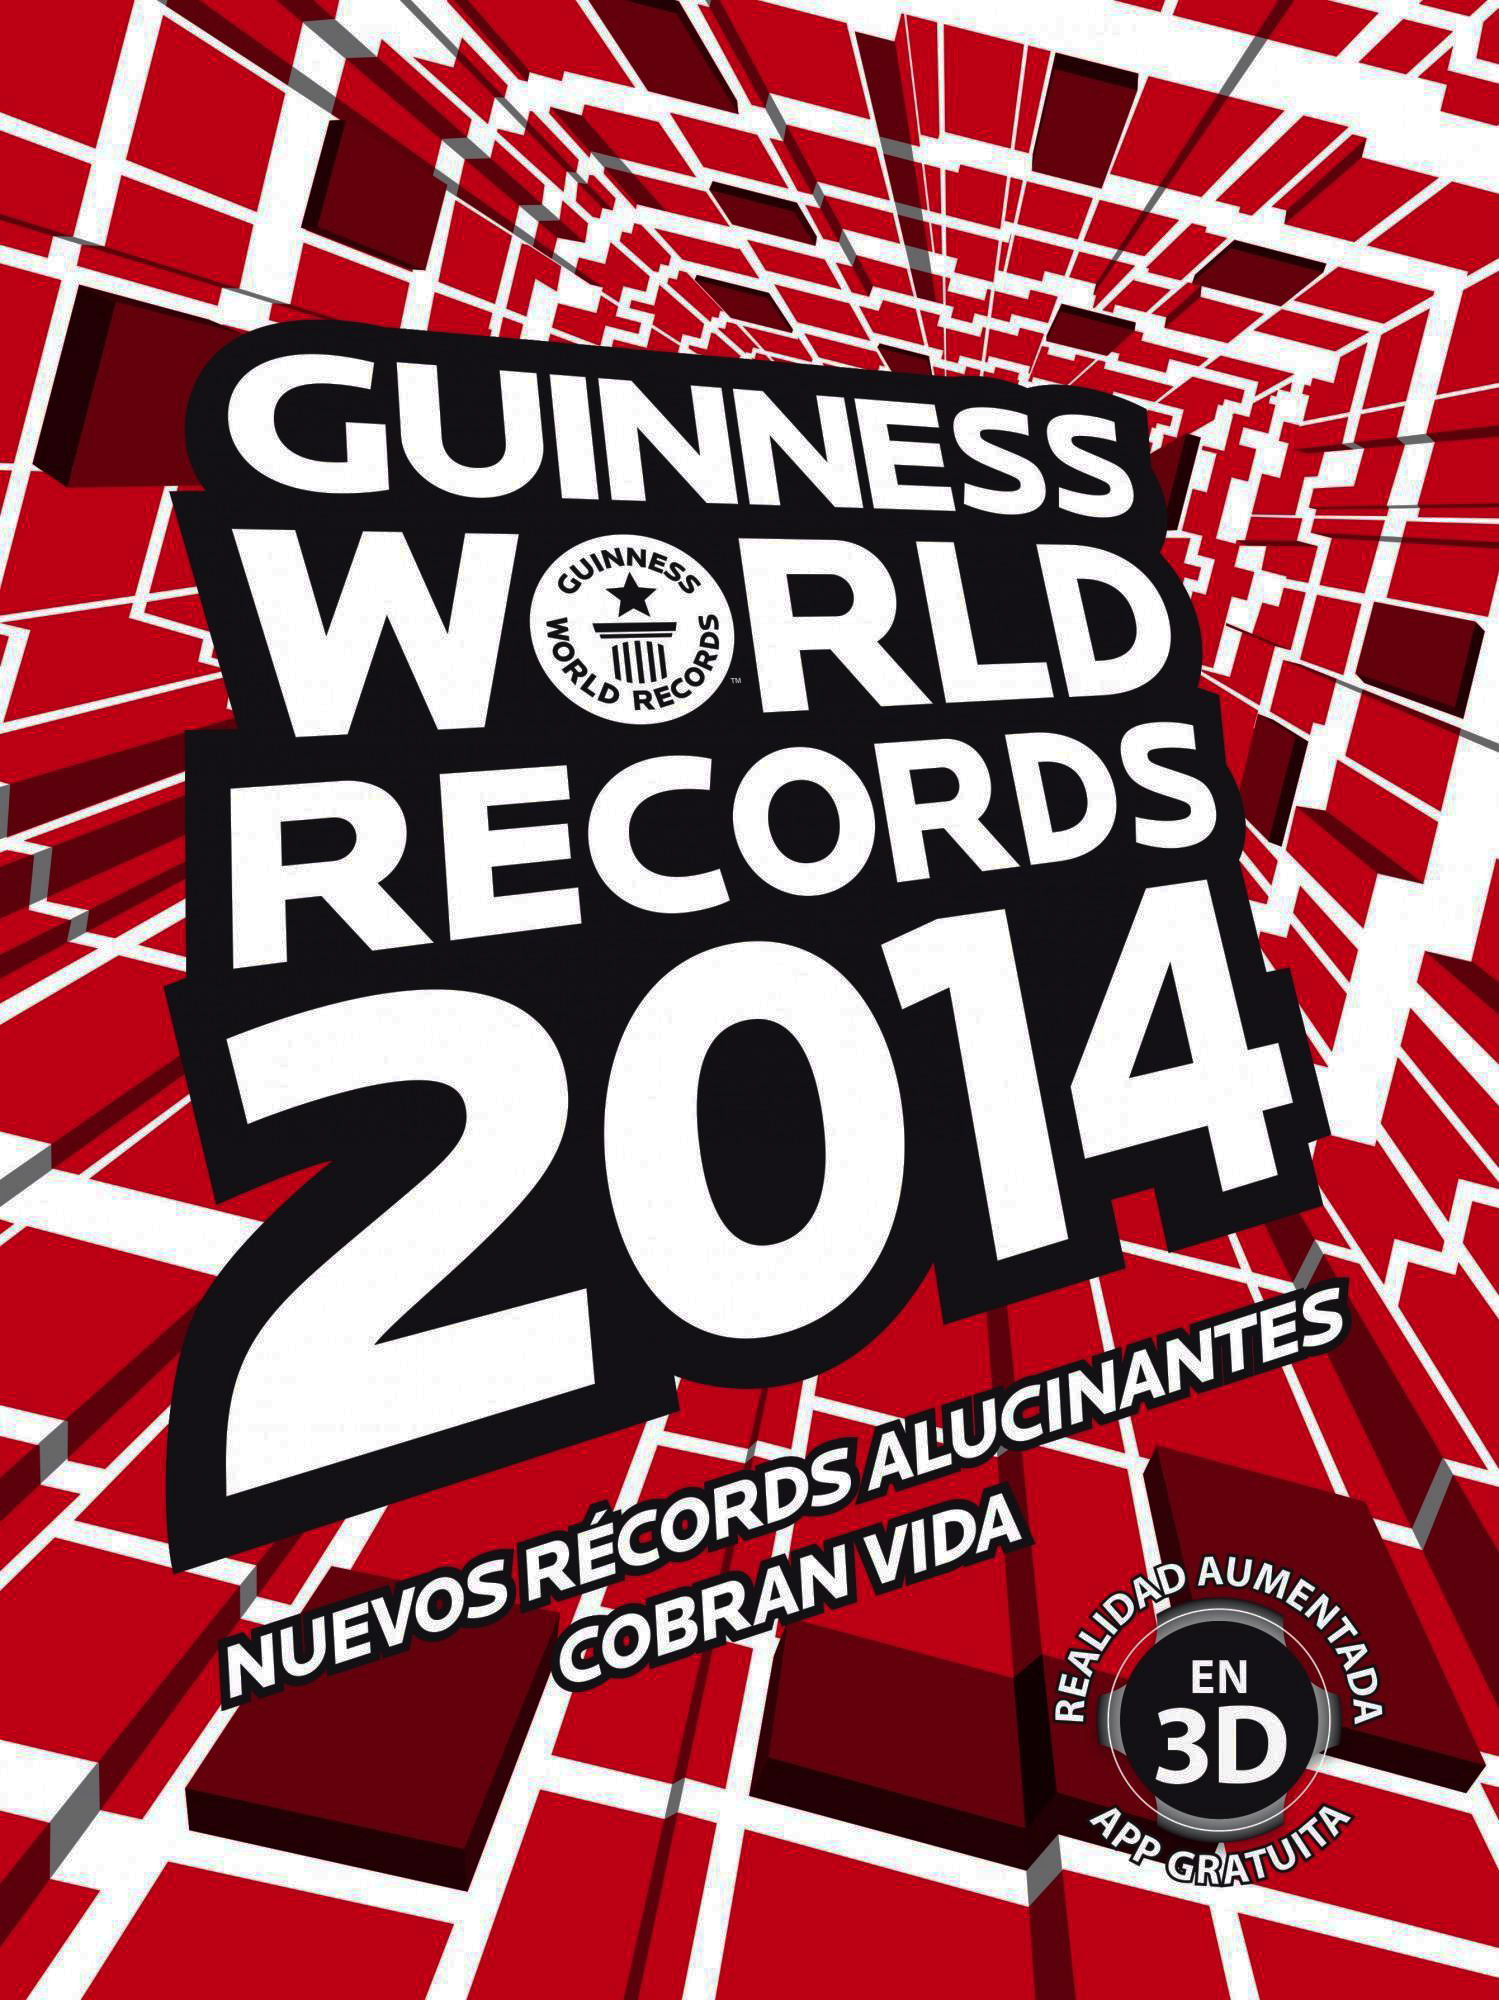 guinness-world-records-2014-9788408118381